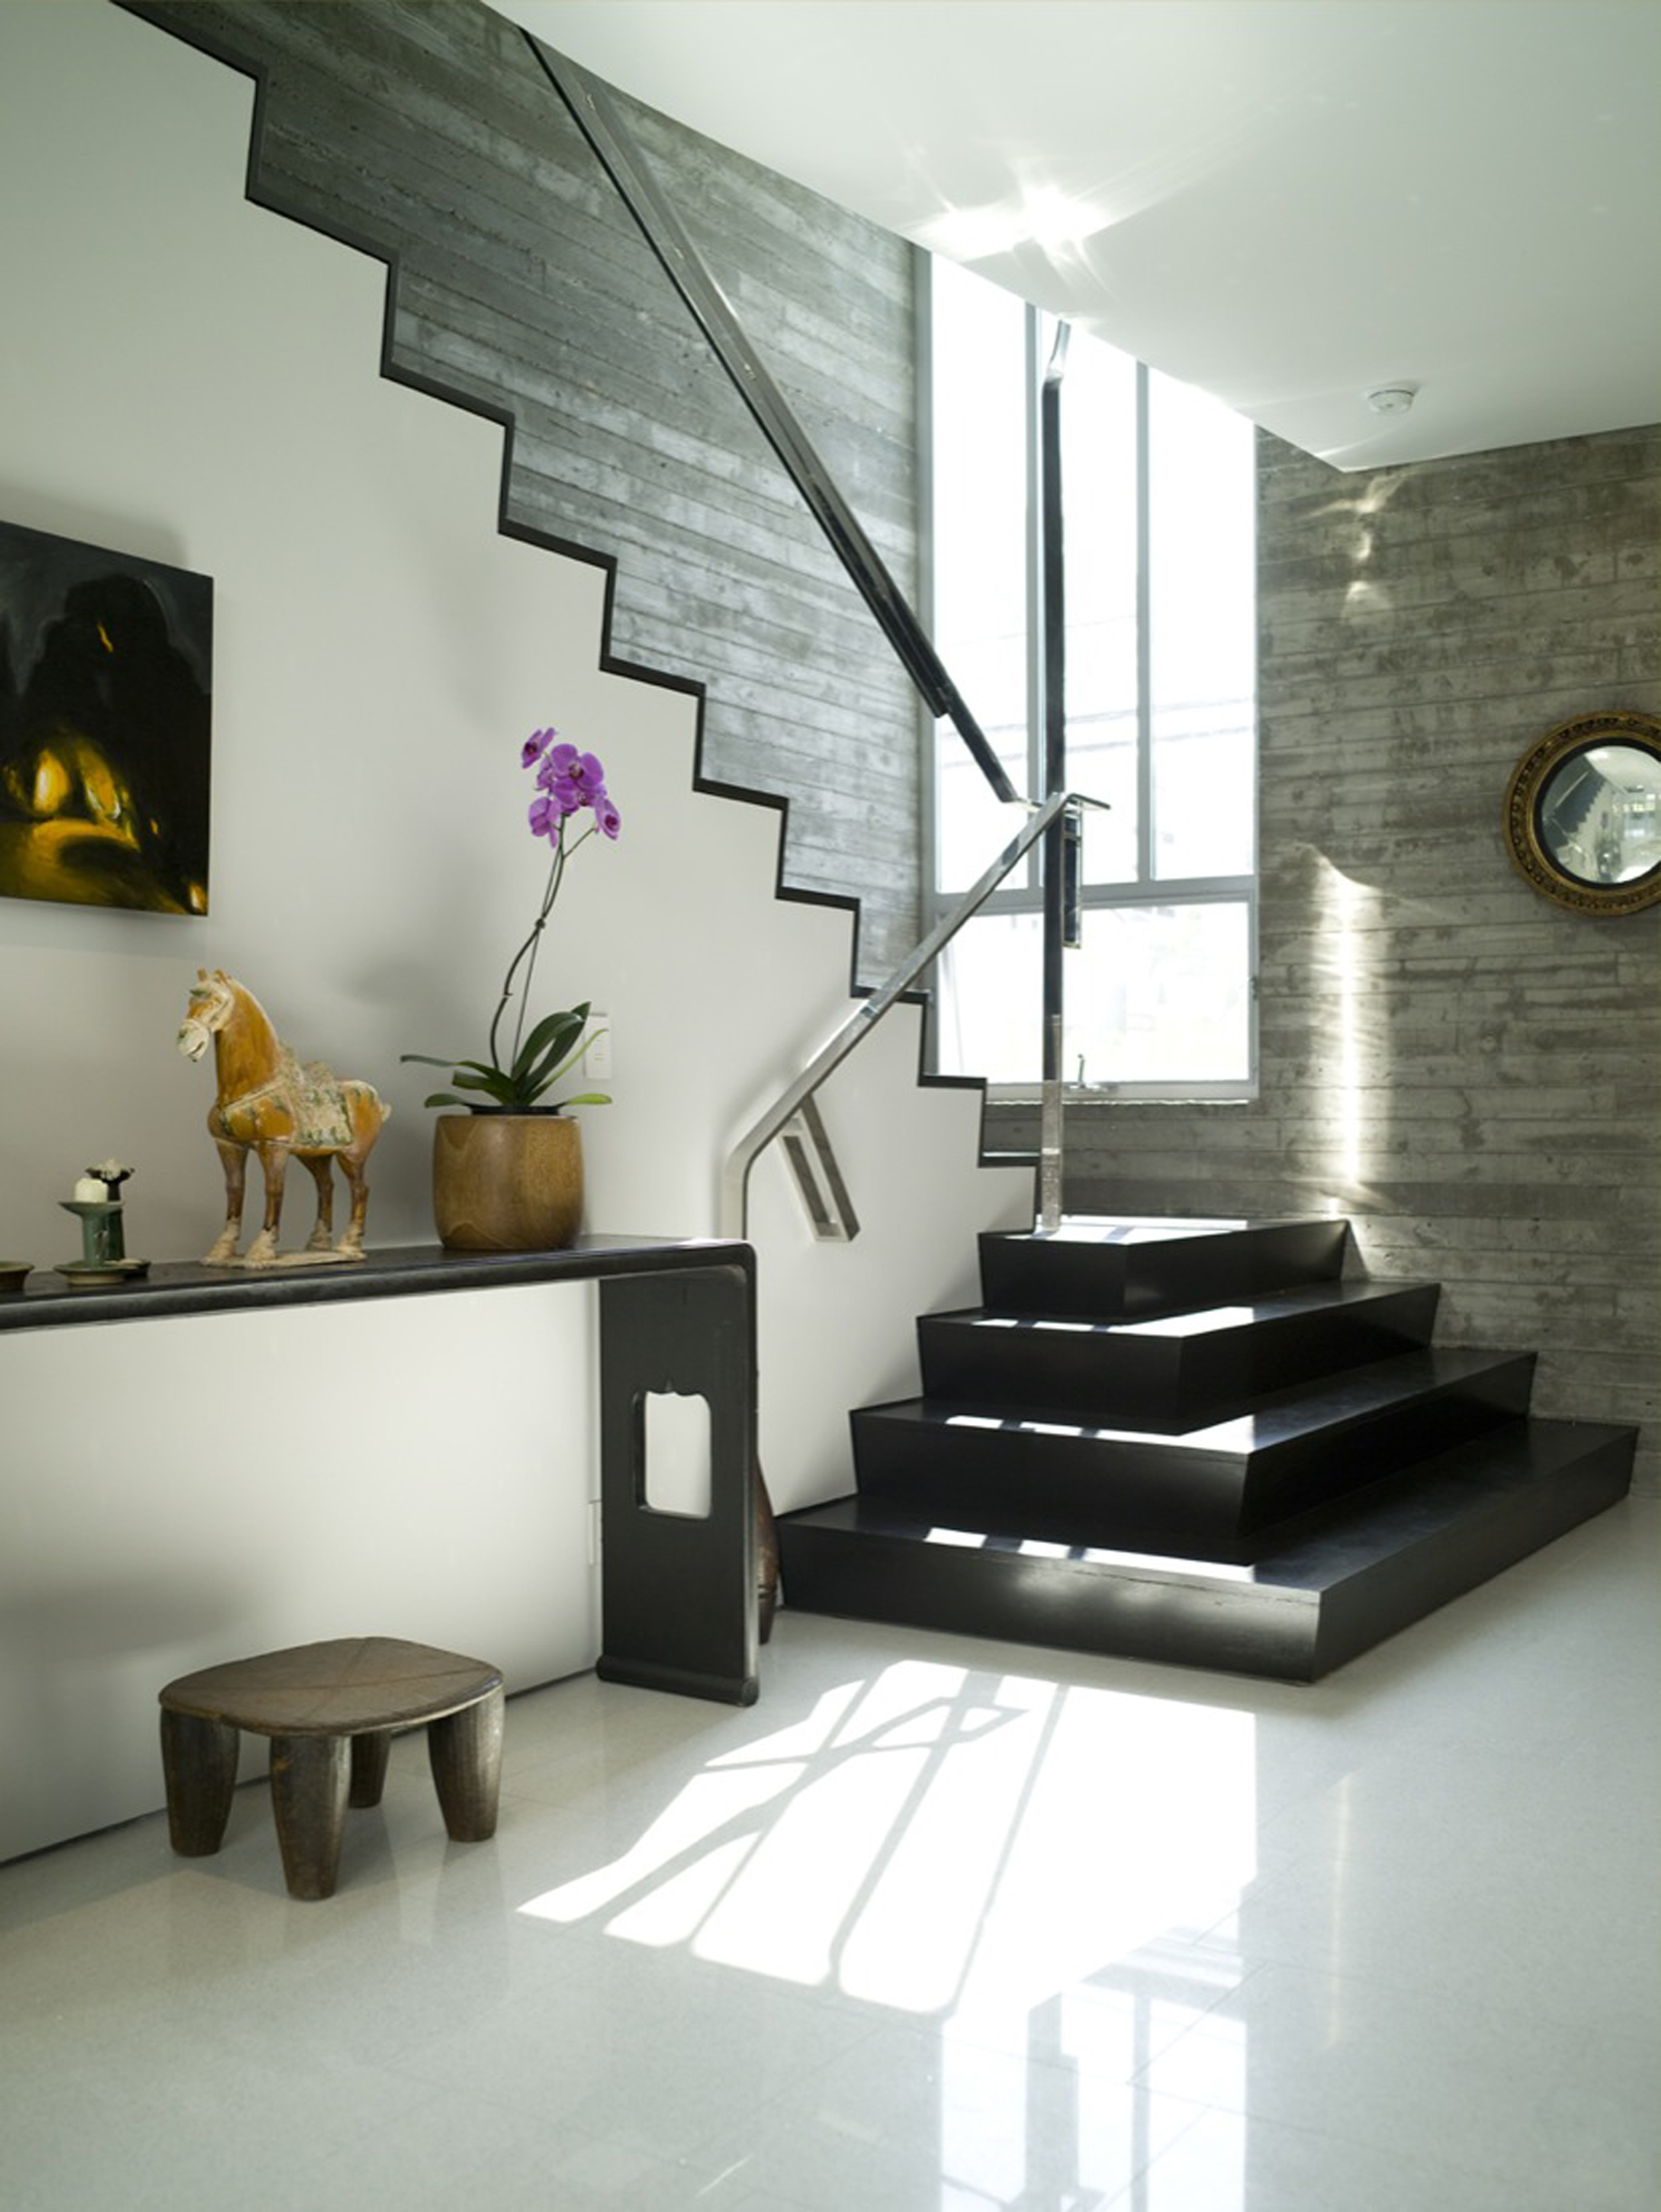 Luxurious Town House Interior Design Idea Black Staircase White Gray Wall And White Floor Tile Beautiful Town House Interior Design Ideas (Image 29 of 123)